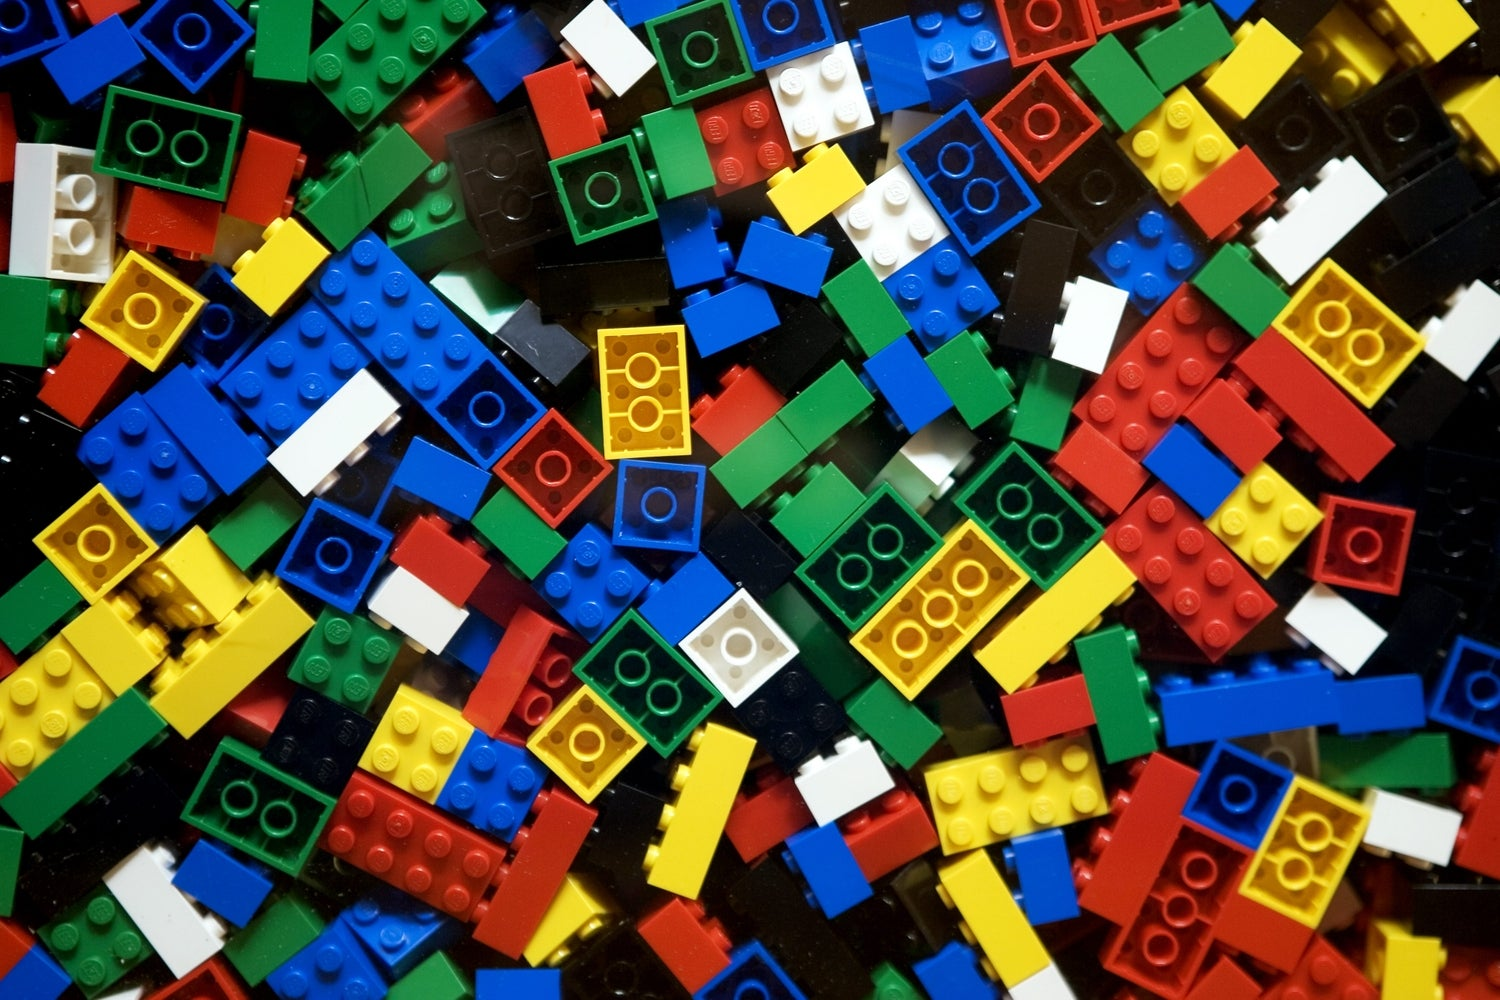 5 Useful Items You Can Build With Your Kid's LEGO